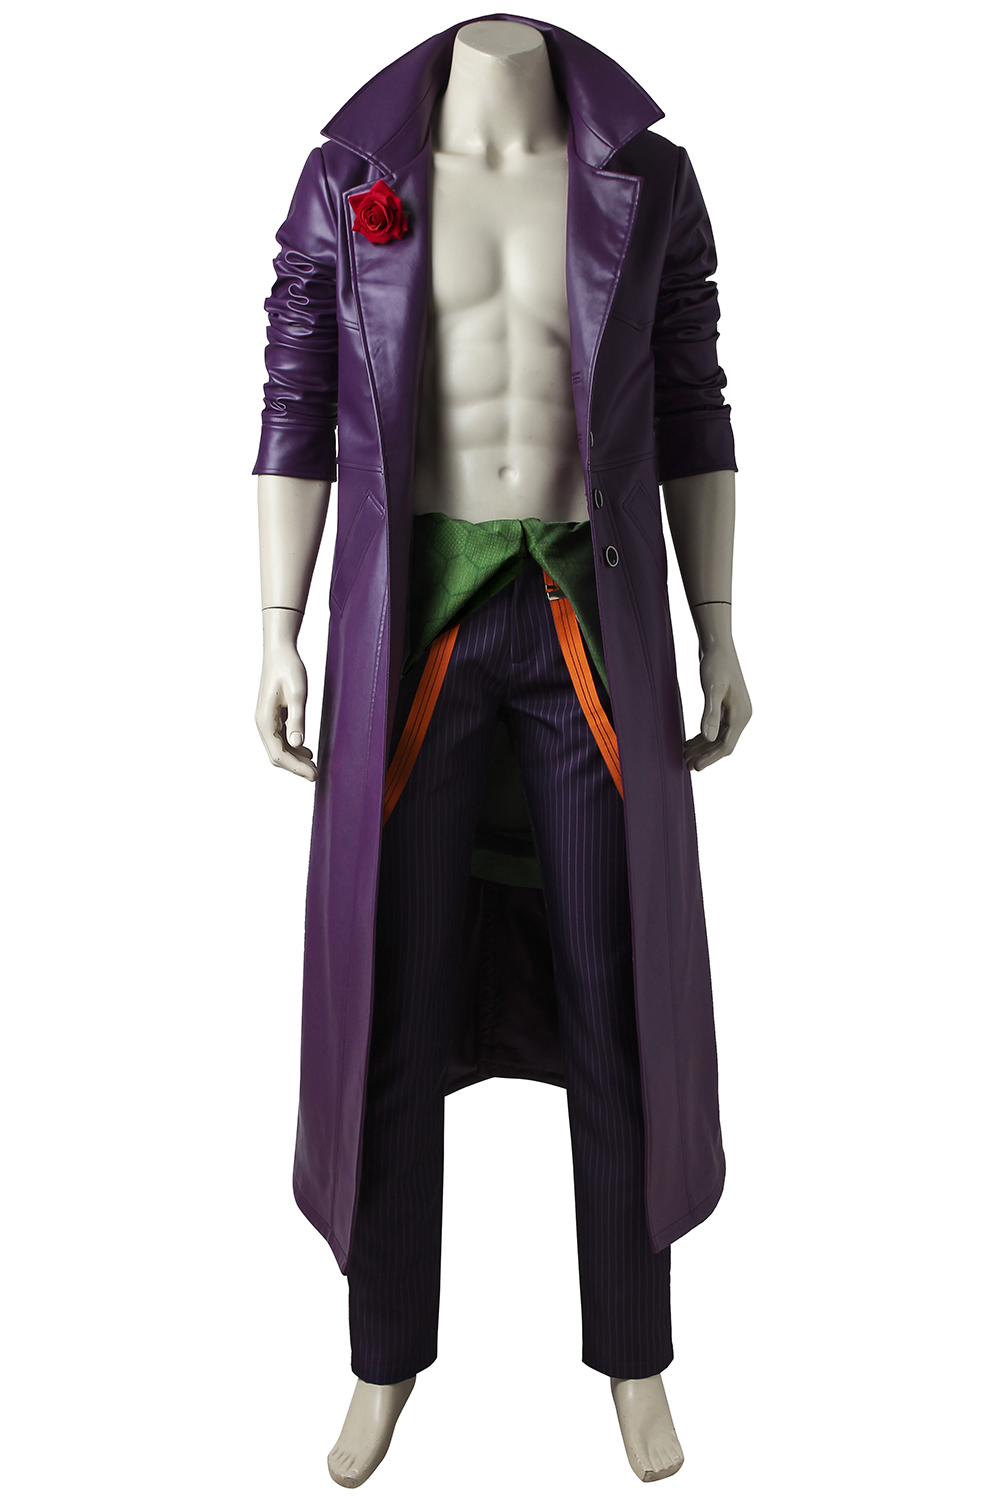 Online Get Cheap Injustice Costume -Aliexpress.com | Alibaba Group